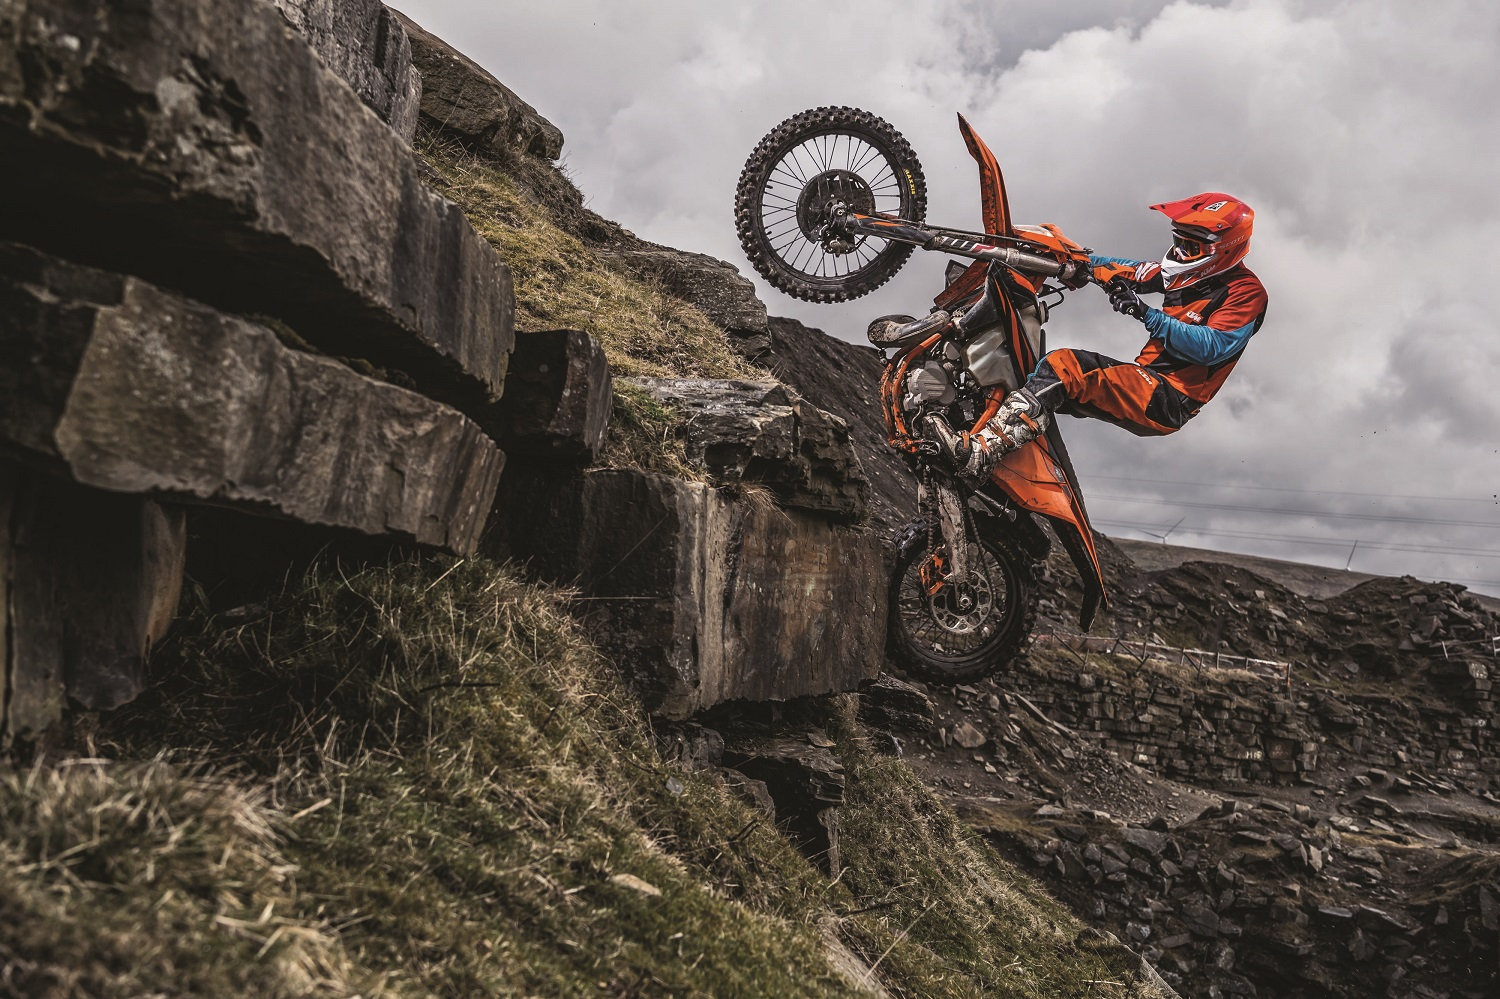 01_Action_KTM 300 EXC TPI MY2019